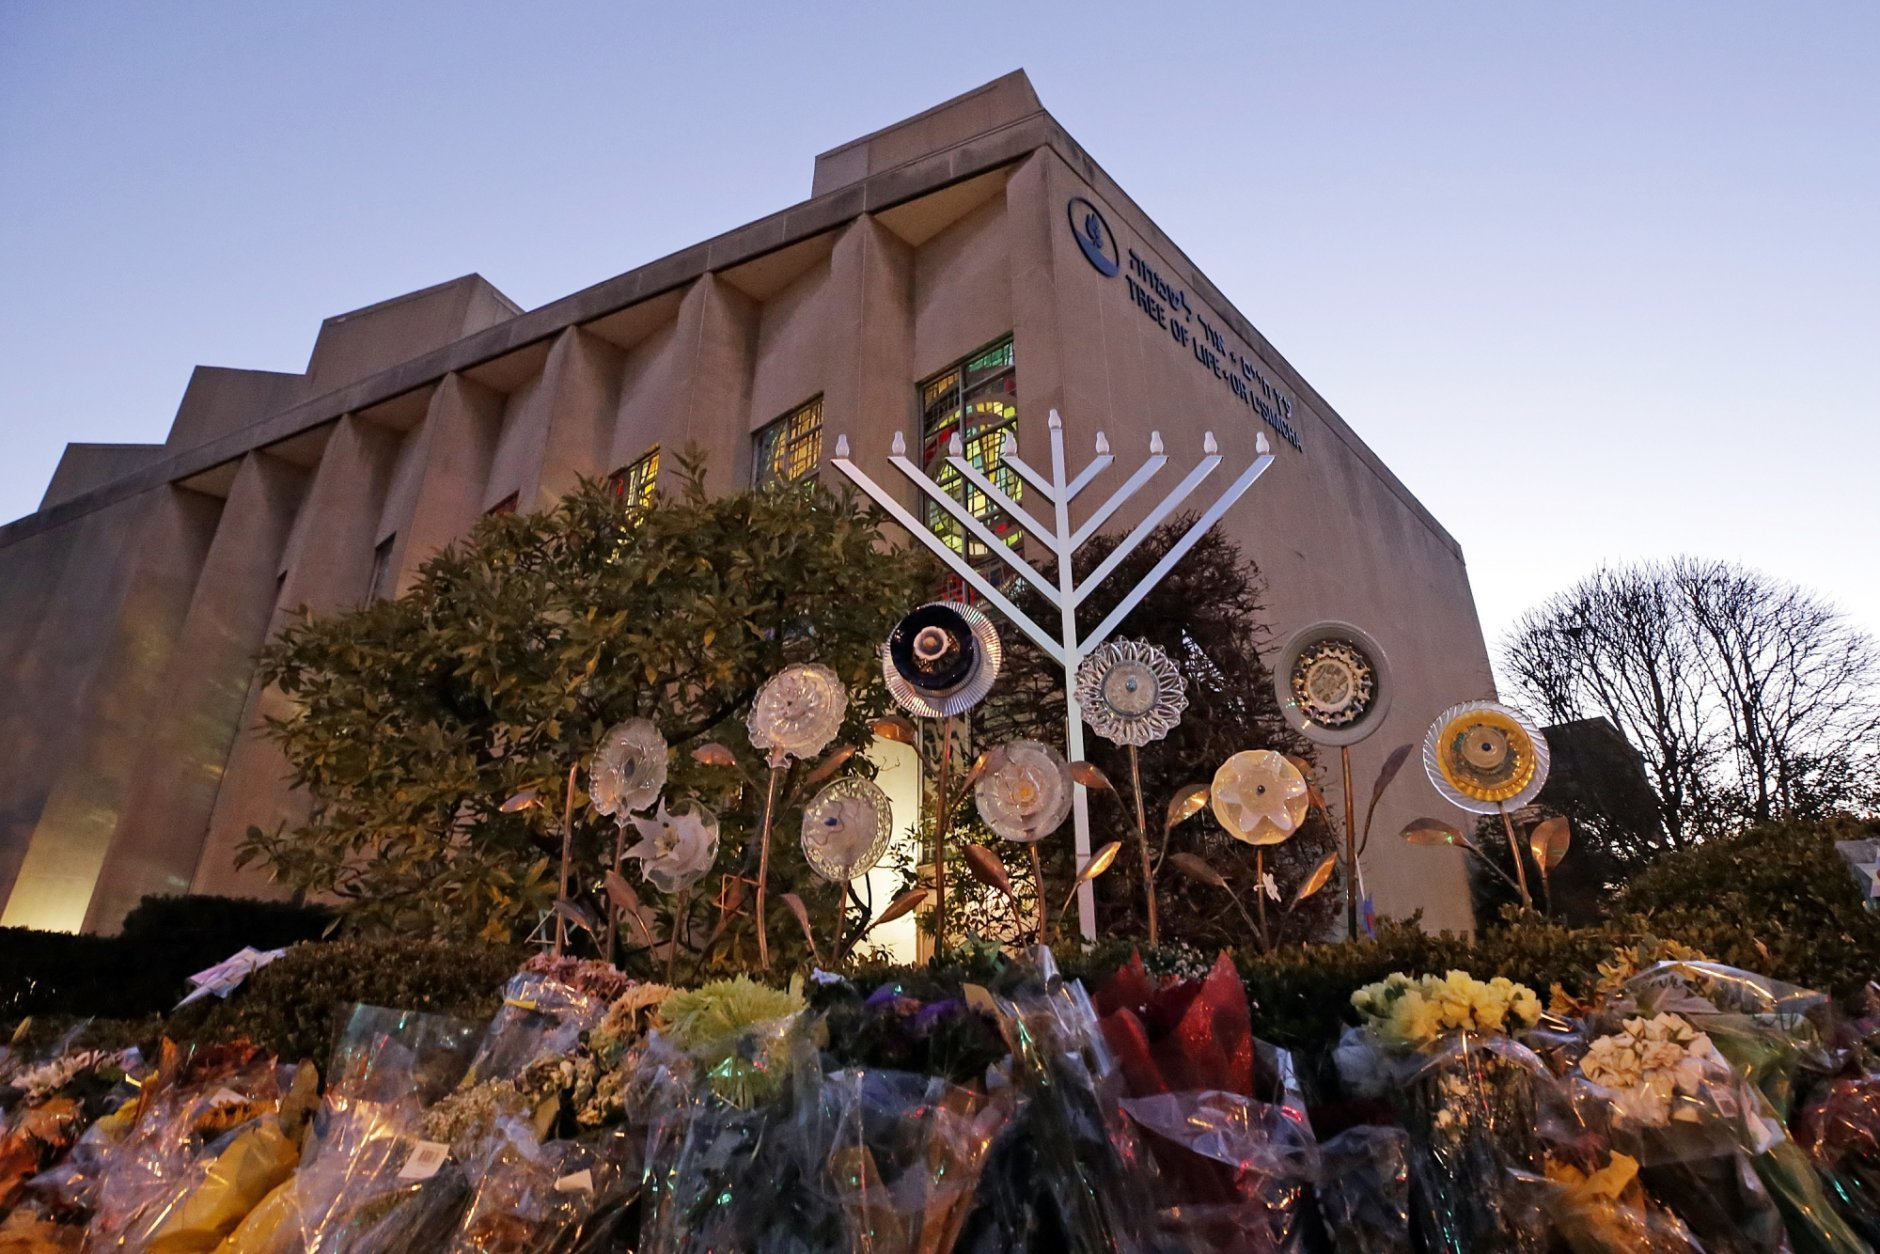 A menorah is installed outside the Tree of Life Synagogue in preparation for a celebration service at sundown on the first night of Hanukkah, Sunday, Dec. 2, 2018 in the Squirrel Hill neighborhood of Pittsburgh. A gunman shot and killed 11 people while they worshipped Saturday, Oct. 27, 2018 at the temple. (AP Photo/Gene J. Puskar)